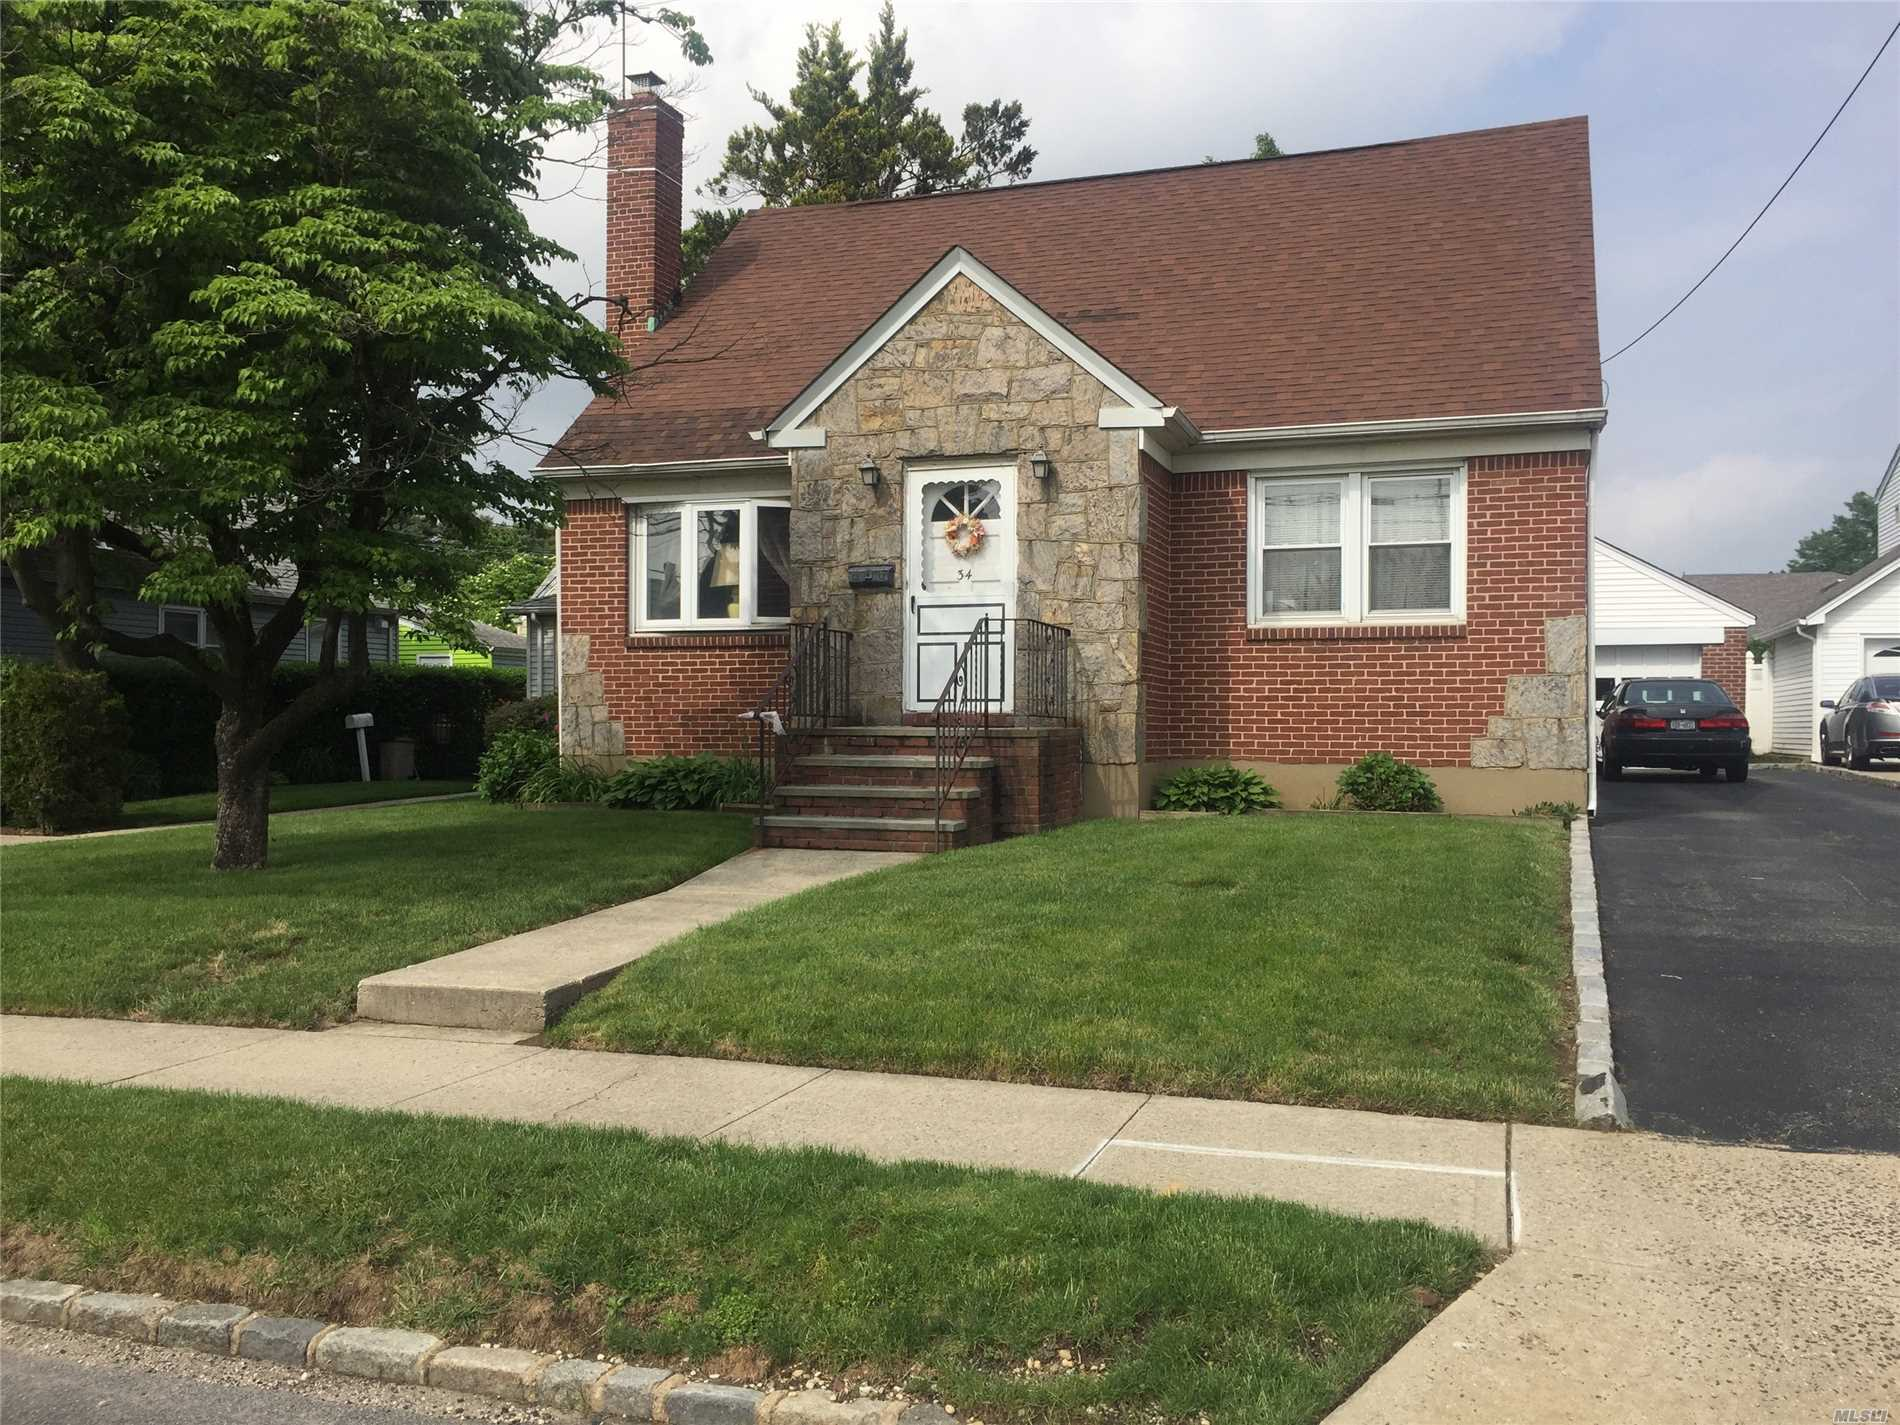 Spacious 4 Bedroom 2 Baths Cape - Rear Dormer 1509 Sq. Ft.- Needs Tlc - Sold As Is - Conveniently Located - Close To Transportation And Schools.